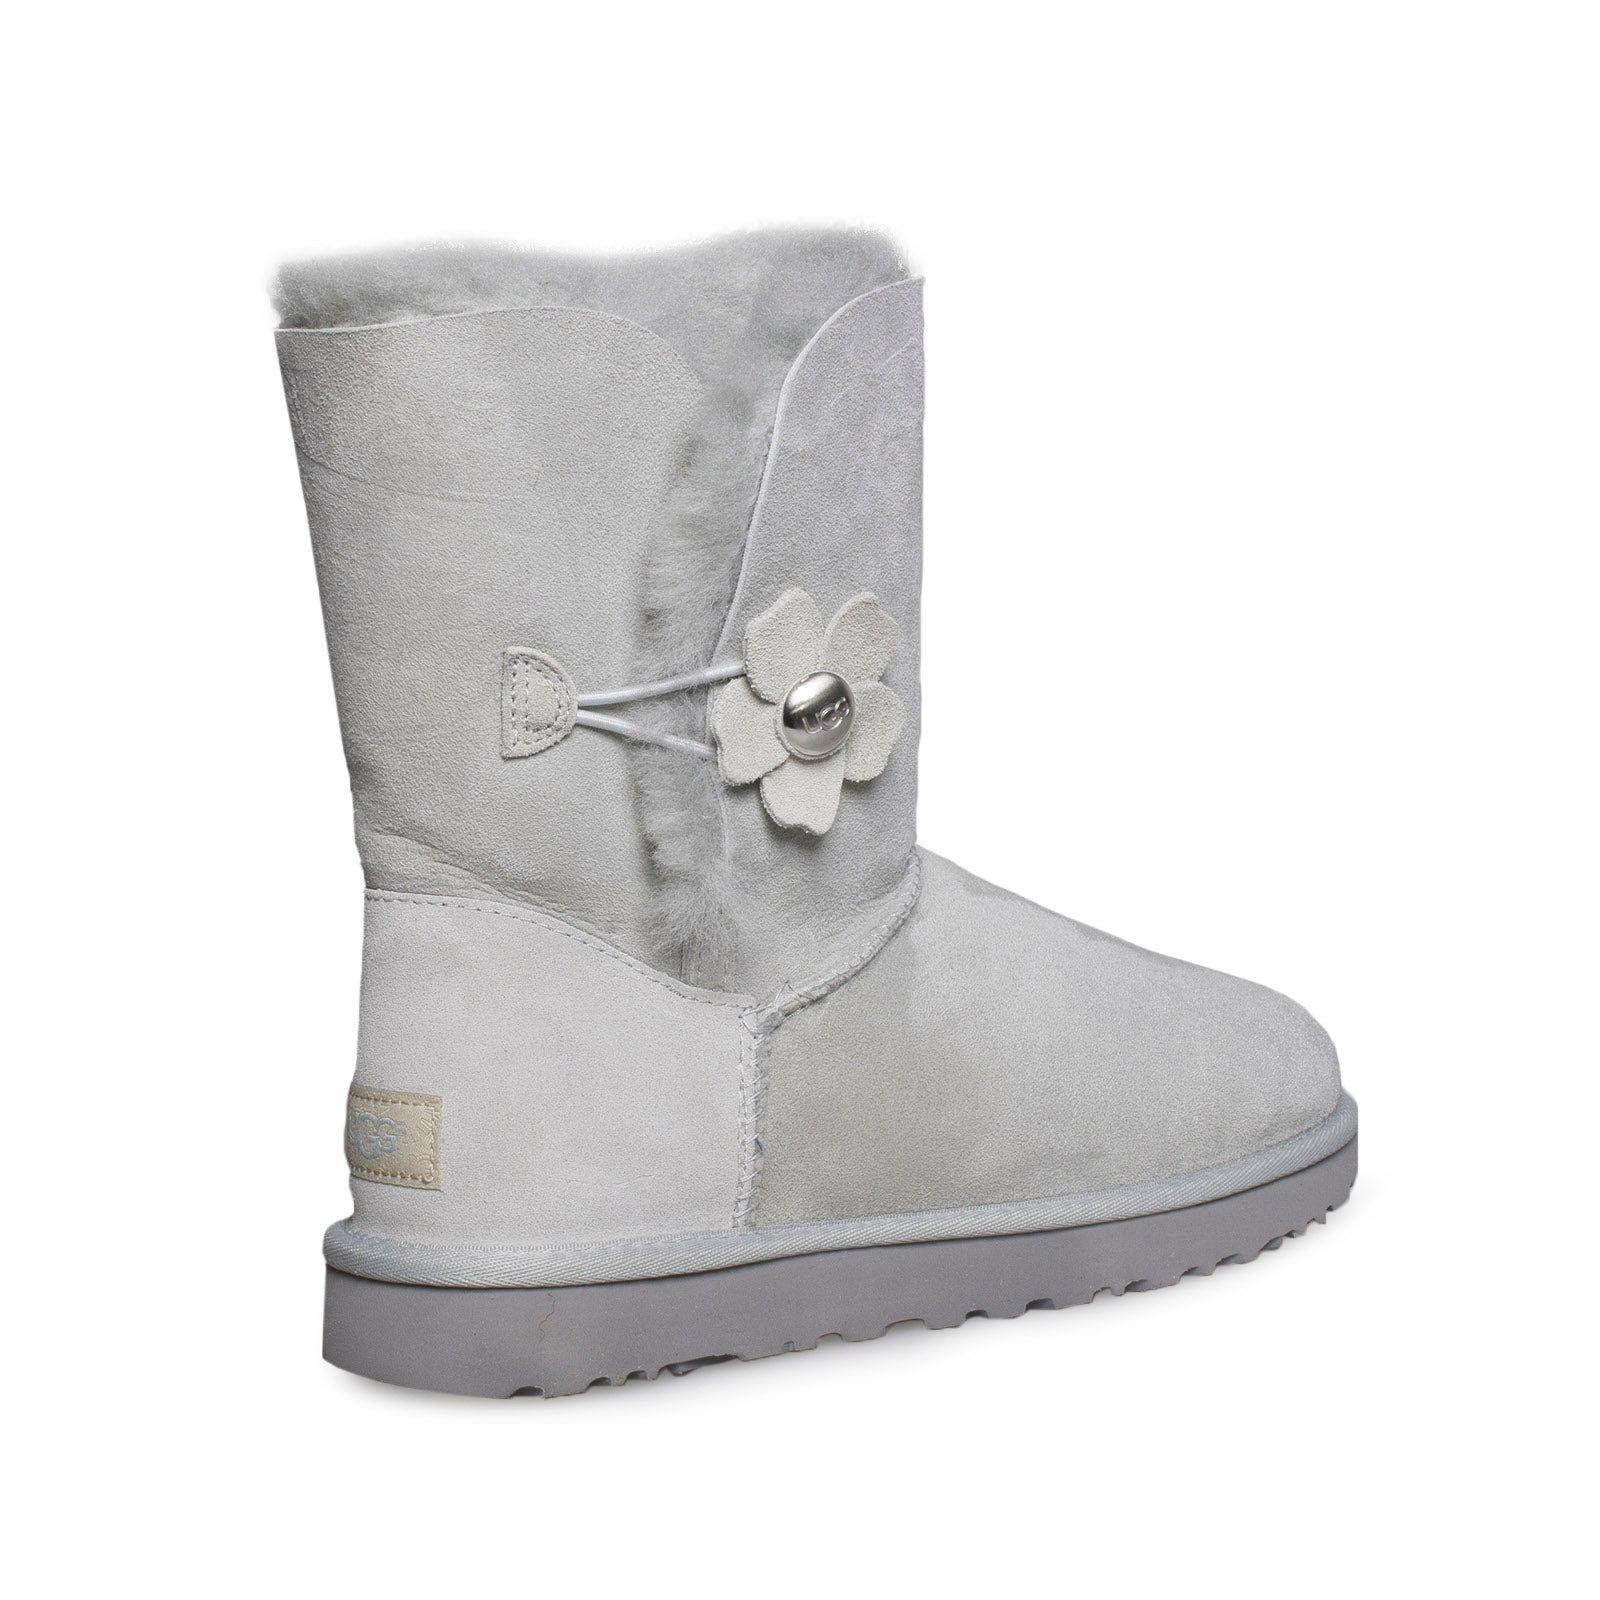 e087874f215 UGG Bailey Button Poppy Grey Violet Boots - Women's